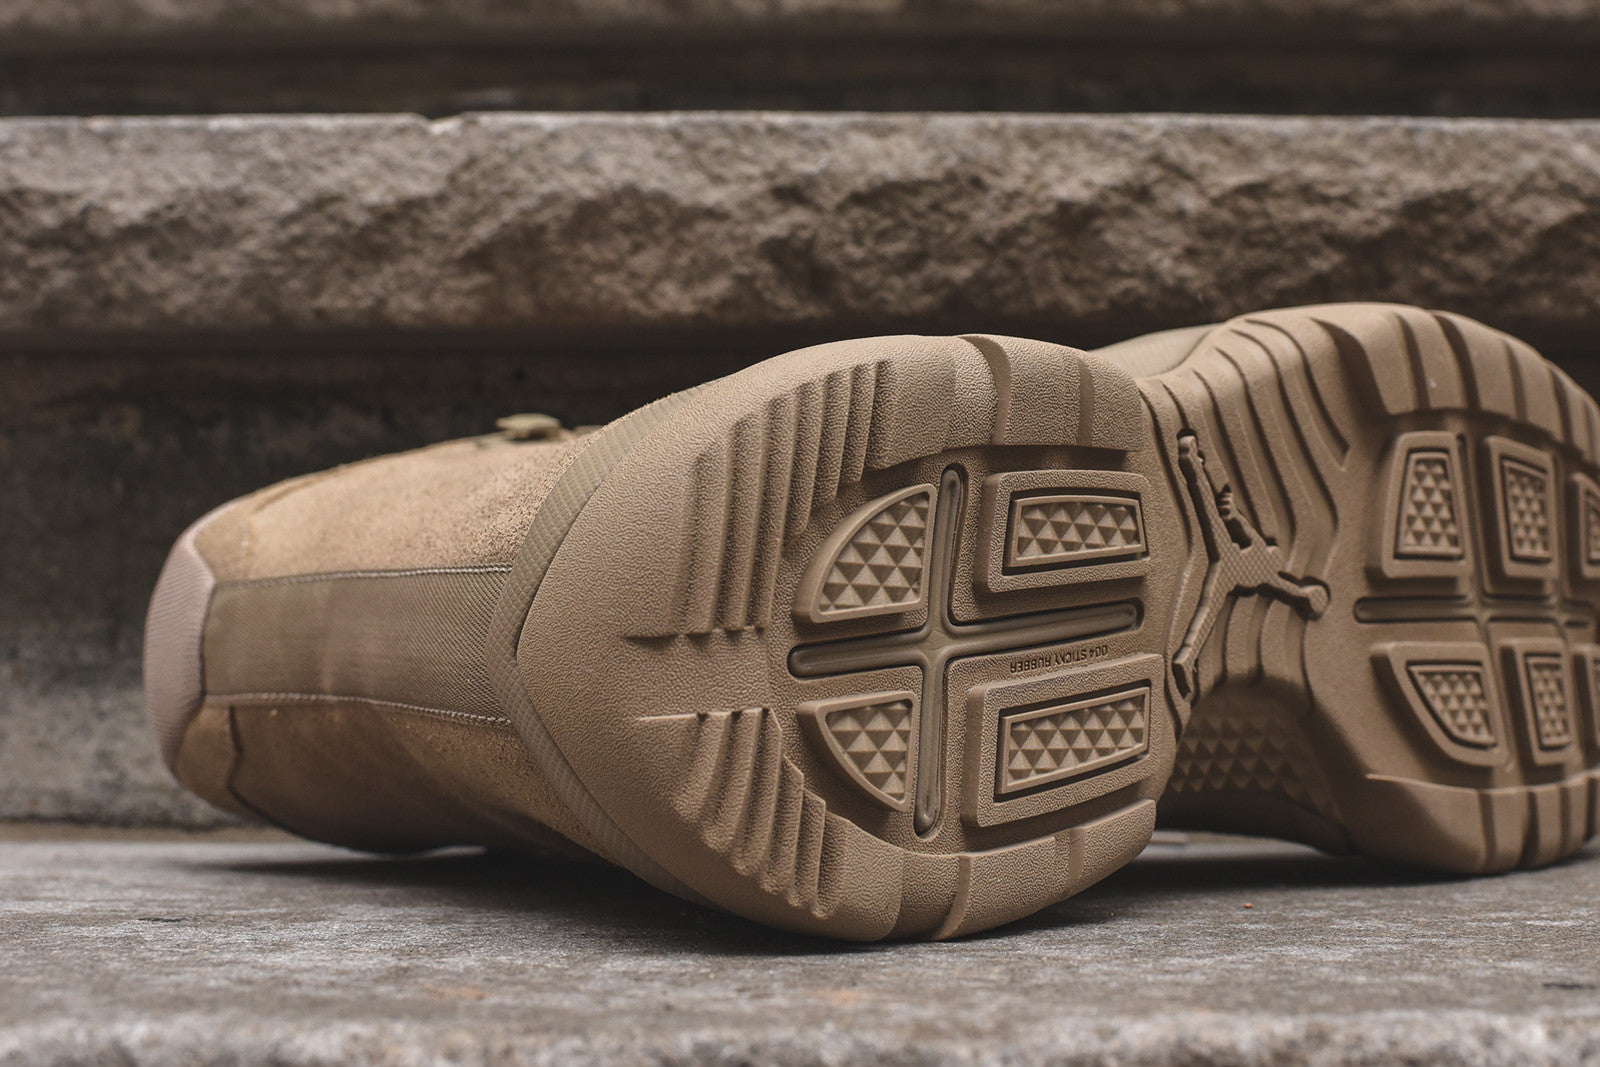 Nike Air Jordan Future Boot - Khaki